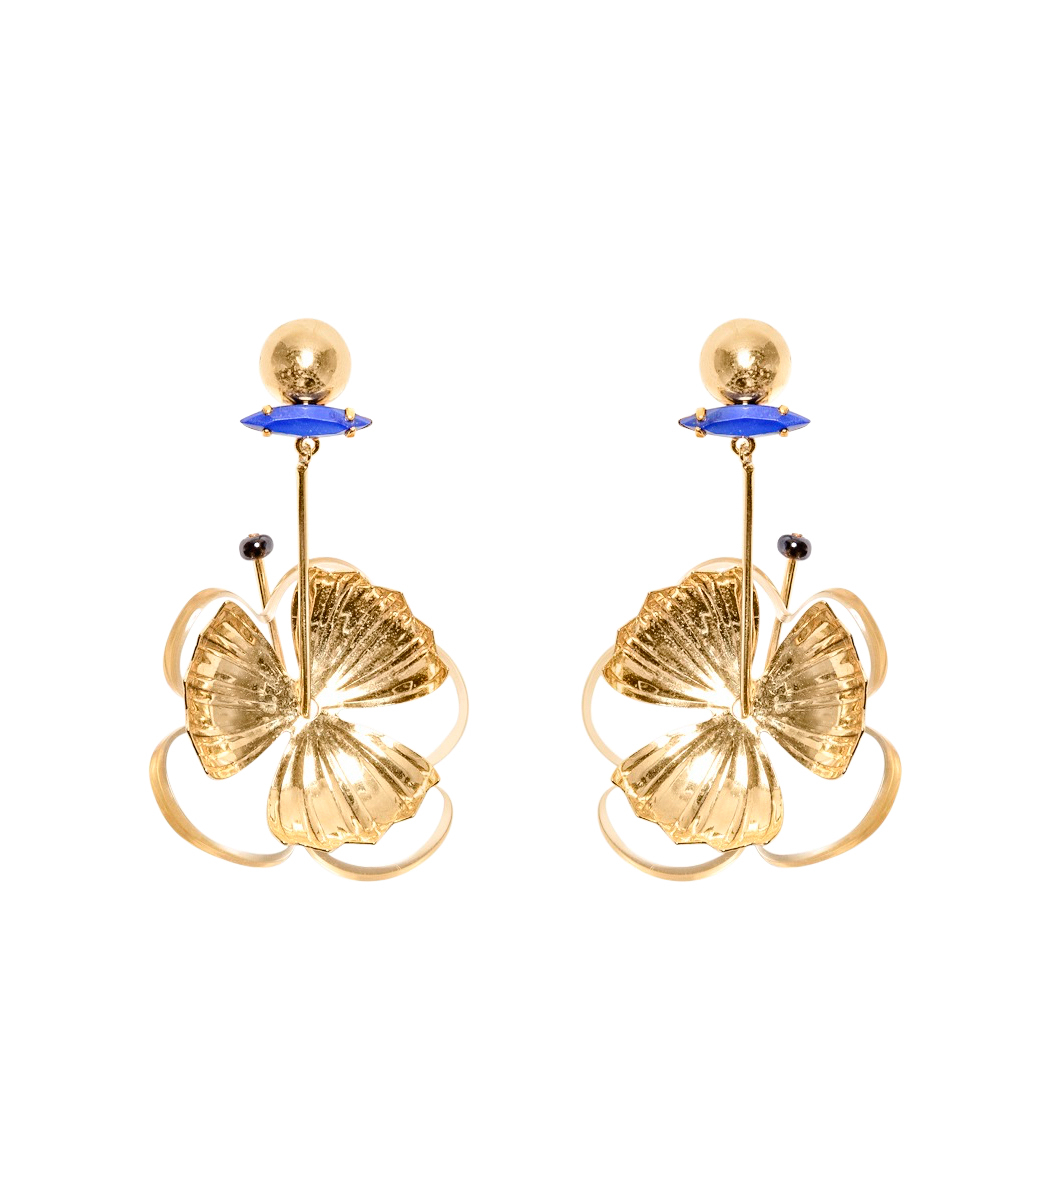 ShopBazaar Lizzie Fortunato Tahitian Flower Earrings MAIN